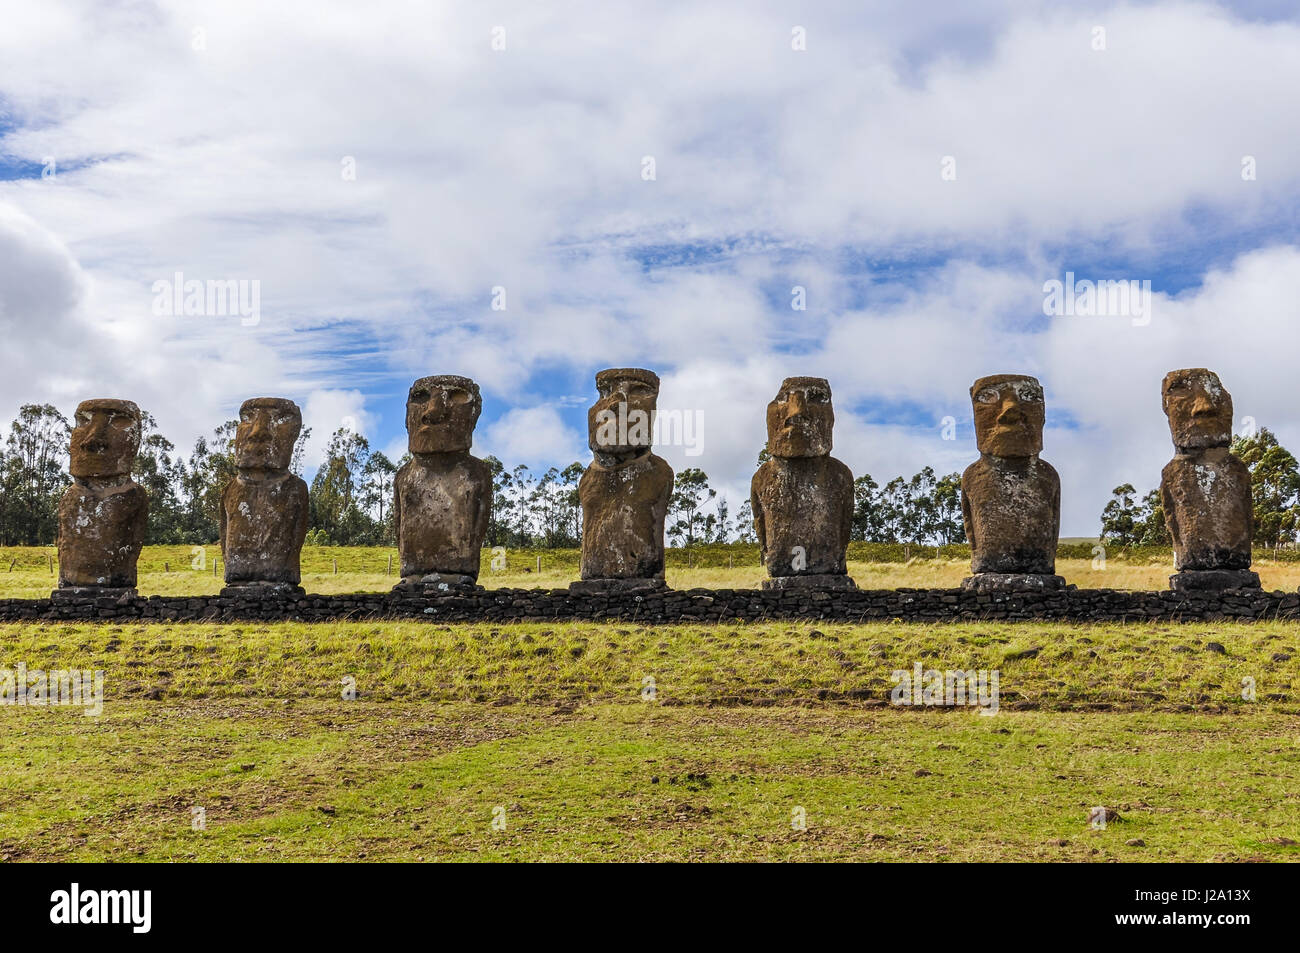 Ahu Akivi site, the only moai statues facing towards the sea in Easter Island, Chile - Stock Image